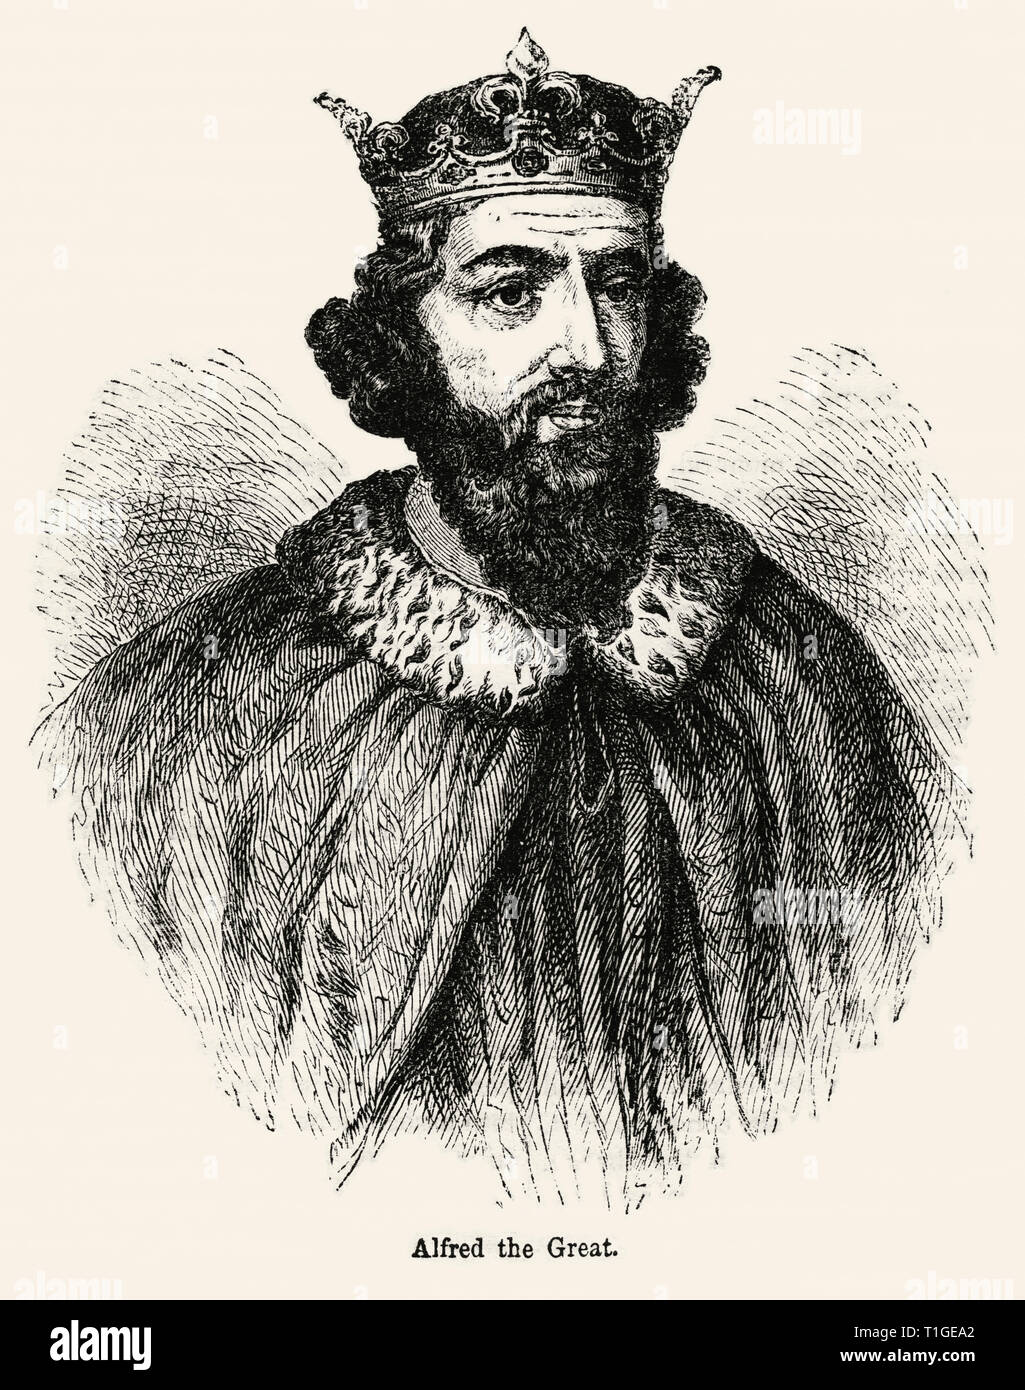 Alfred the Great, Illustration from John Cassell's Illustrated History of England, Vol. I from the earliest period to the reign of Edward the Fourth, Cassell, Petter and Galpin, 1857 - Stock Image